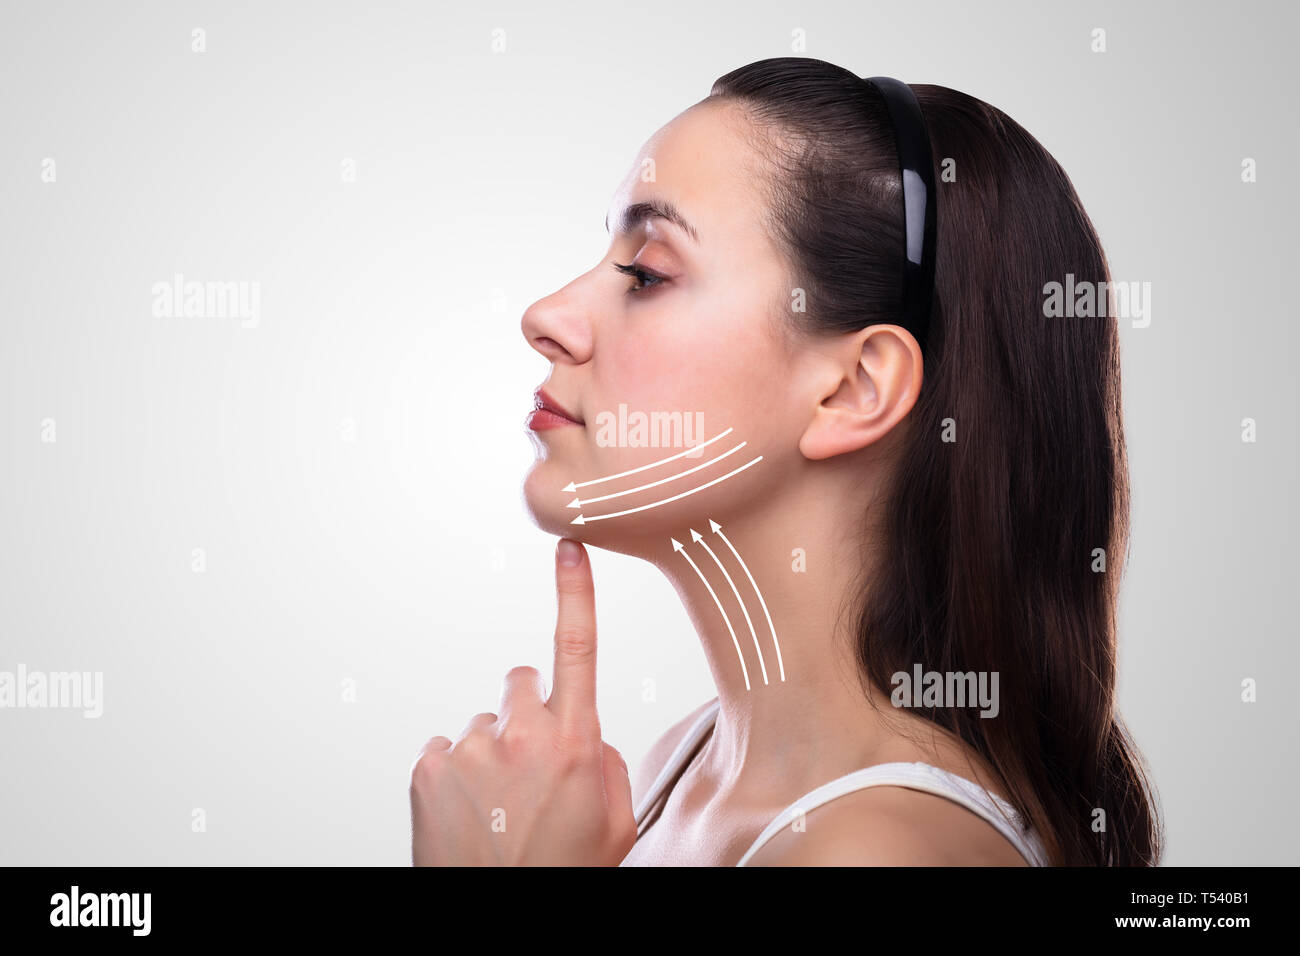 Woman With Arrows On Her Face Over White Background Stock Photo